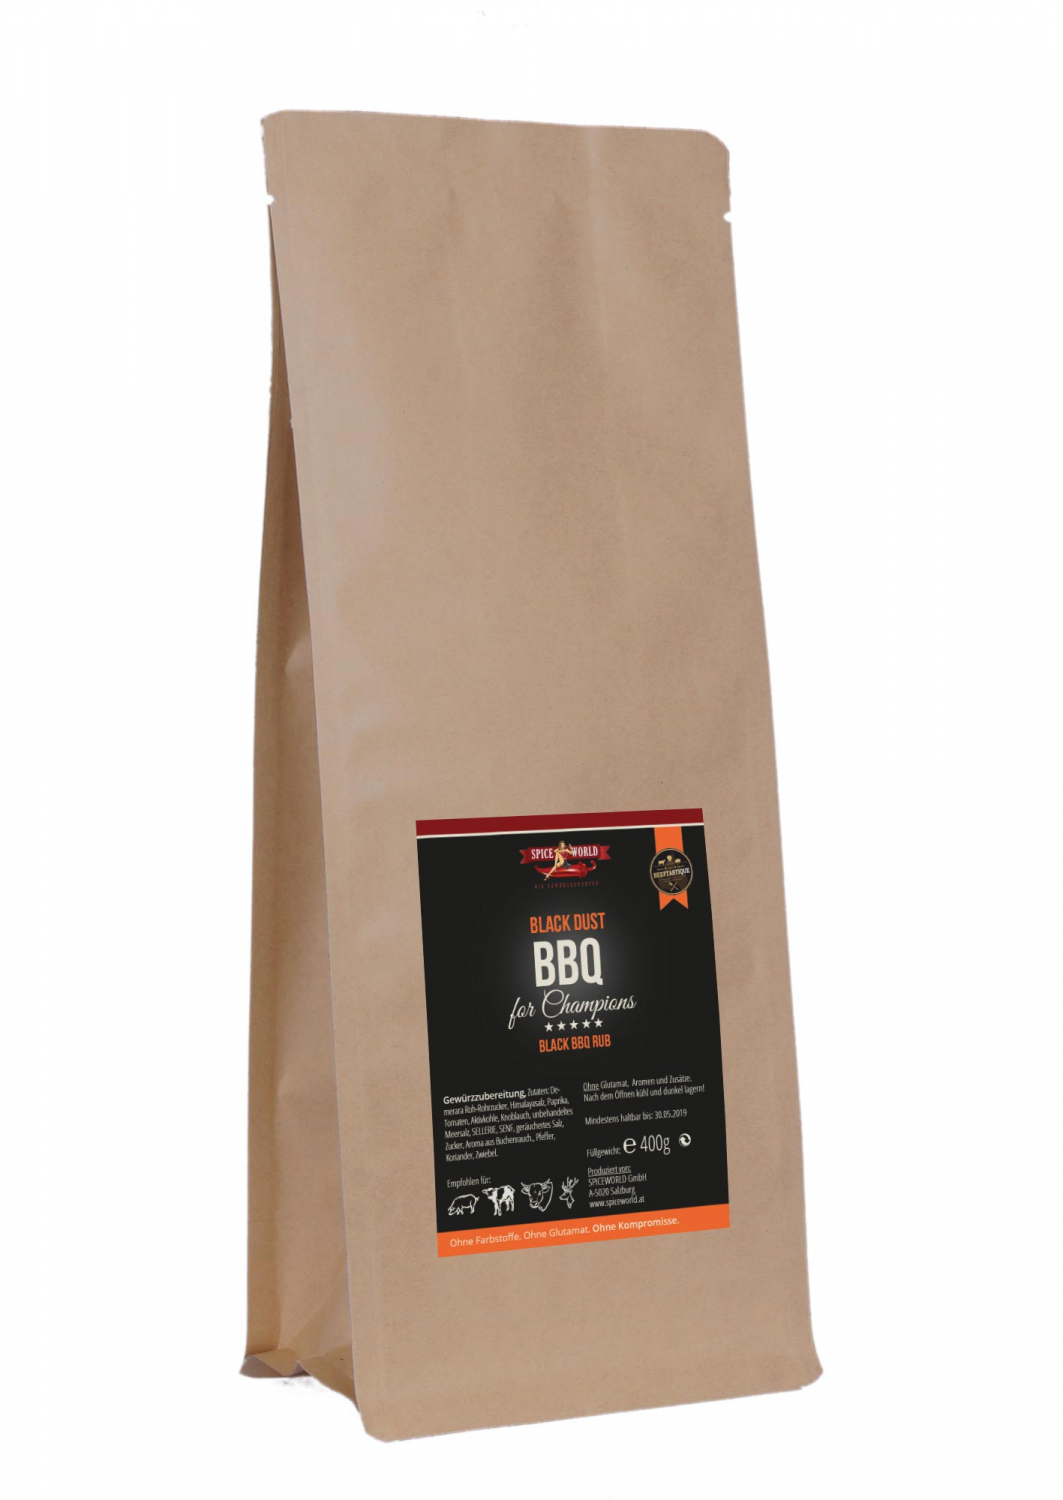 Barbecue for Champions - Black Dust - BBQ Rub - 400g Beutel Heavy-User-Beutel